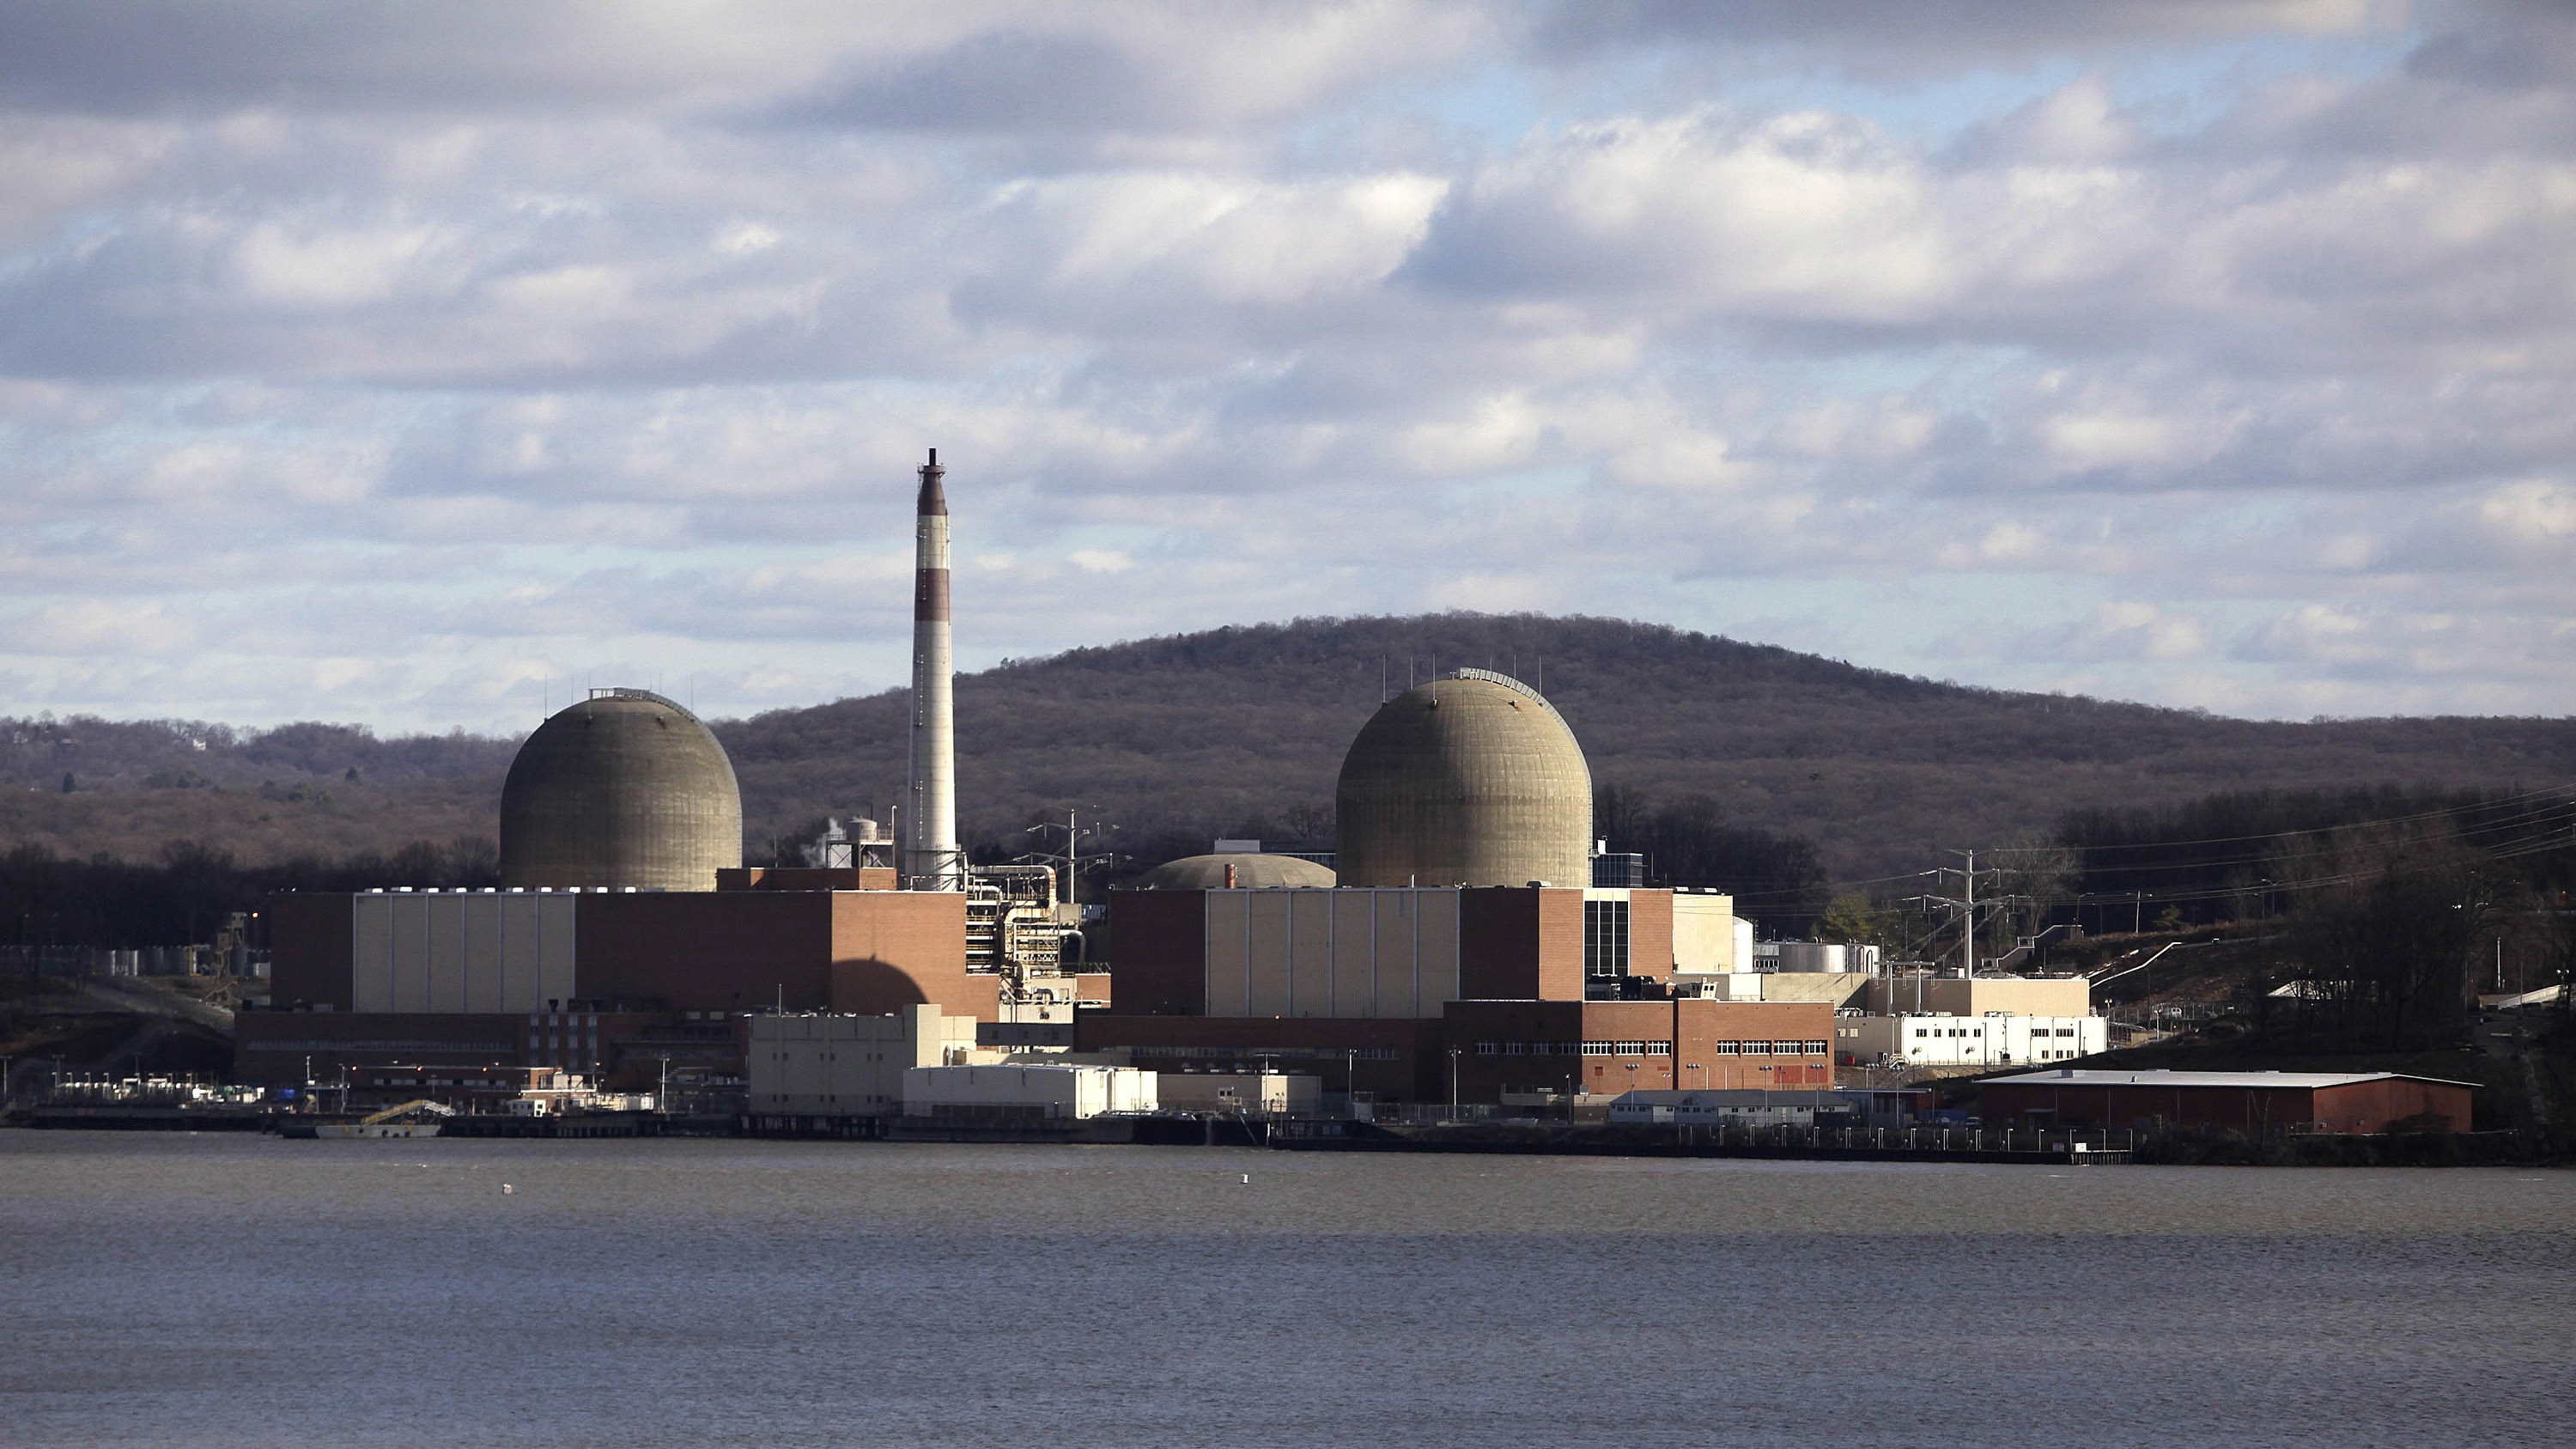 Activists File Emergency Legal Action to Halt the Reactivation of a Nuclear Reactor in New York